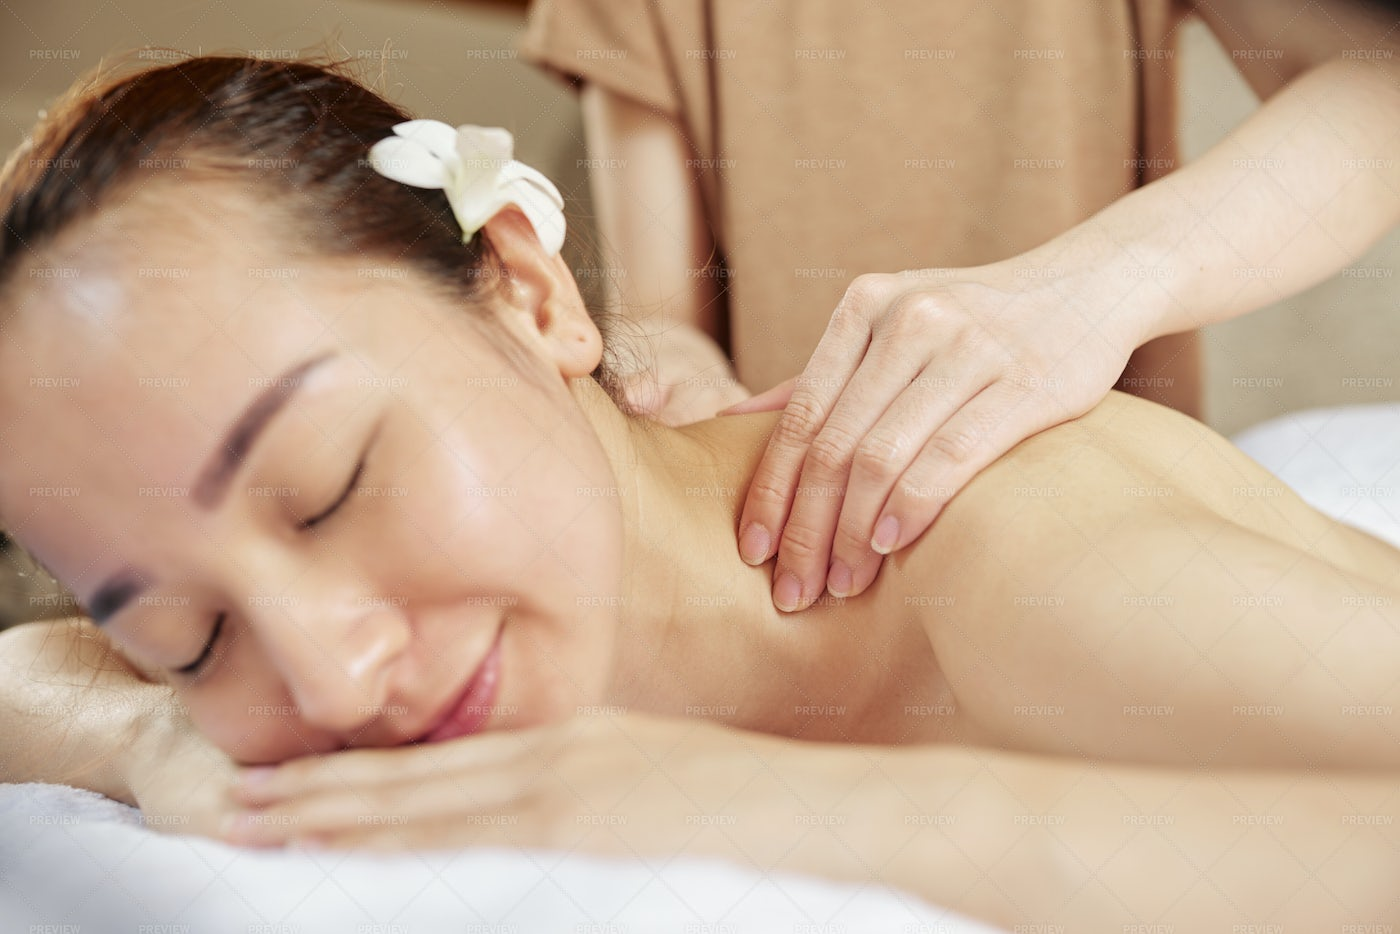 Healing Neck And Shoulders Massage: Stock Photos